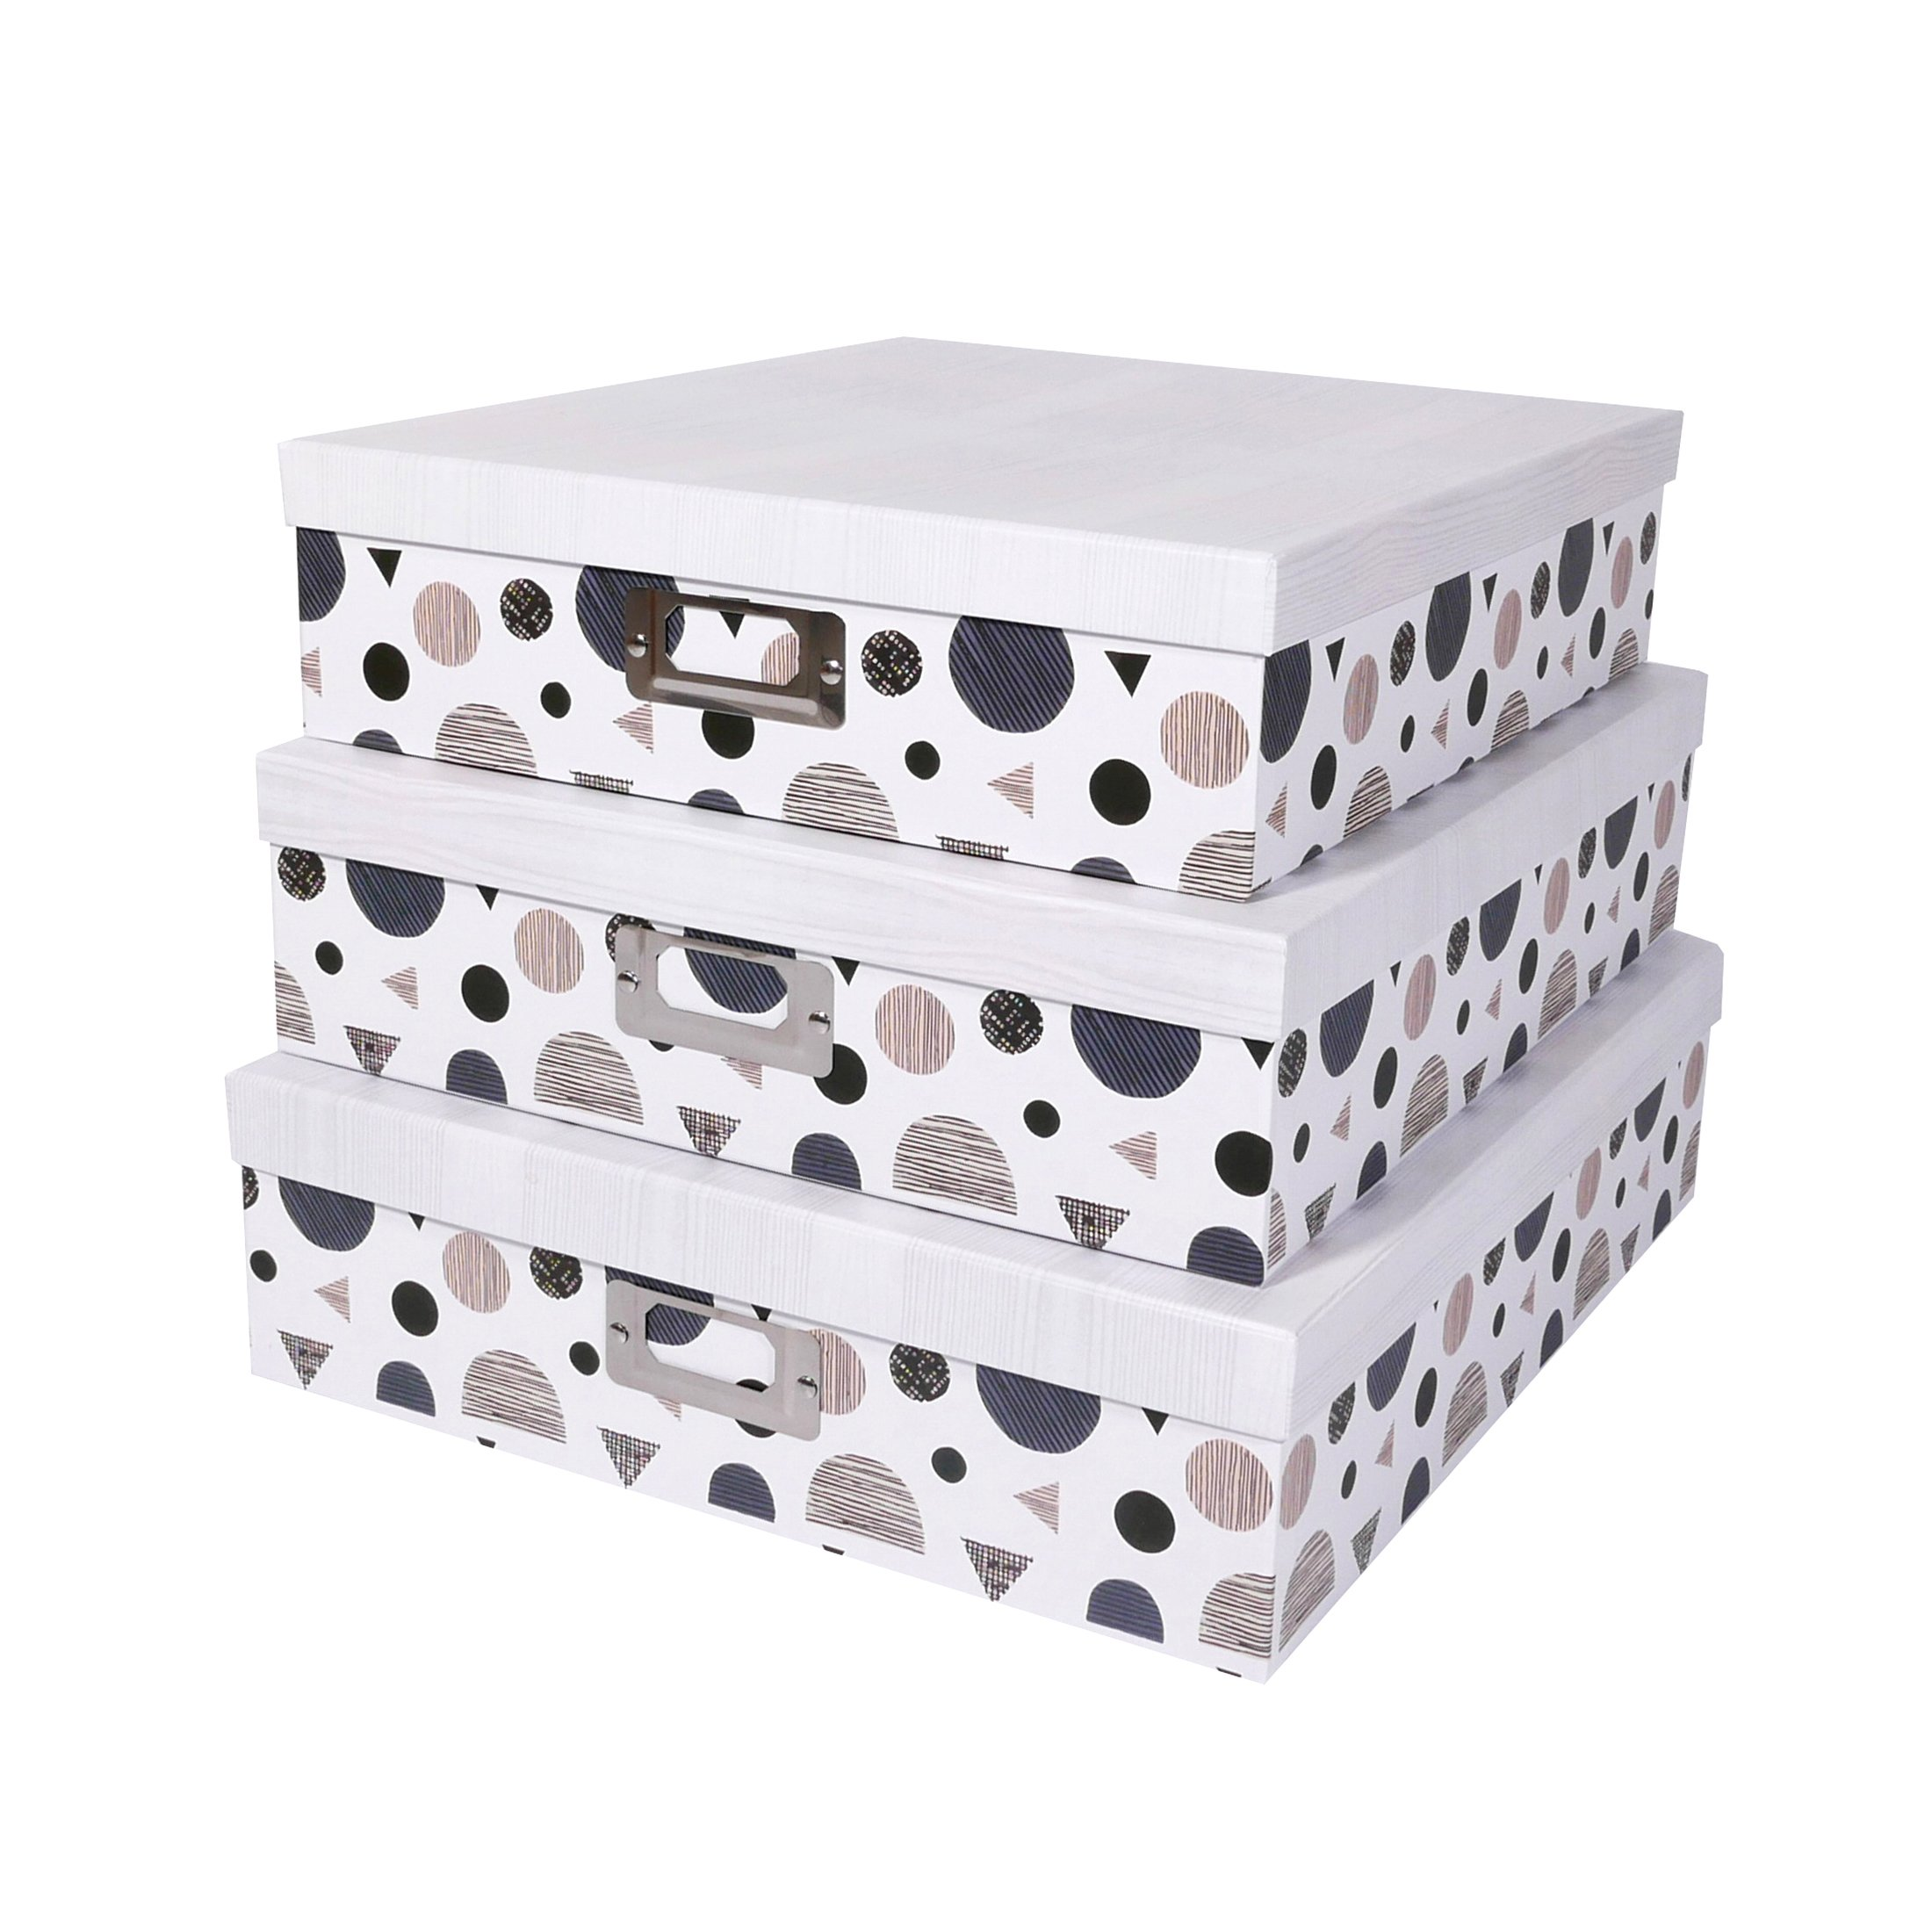 SLPR Decorative Storage Cardboard Boxes with Metal Plate (Set of 3, Geometrical) | Nesting Gift Boxes with Lid for Keepsake Toys Photos Memories Closet Nursery Office Bedroom Decoration